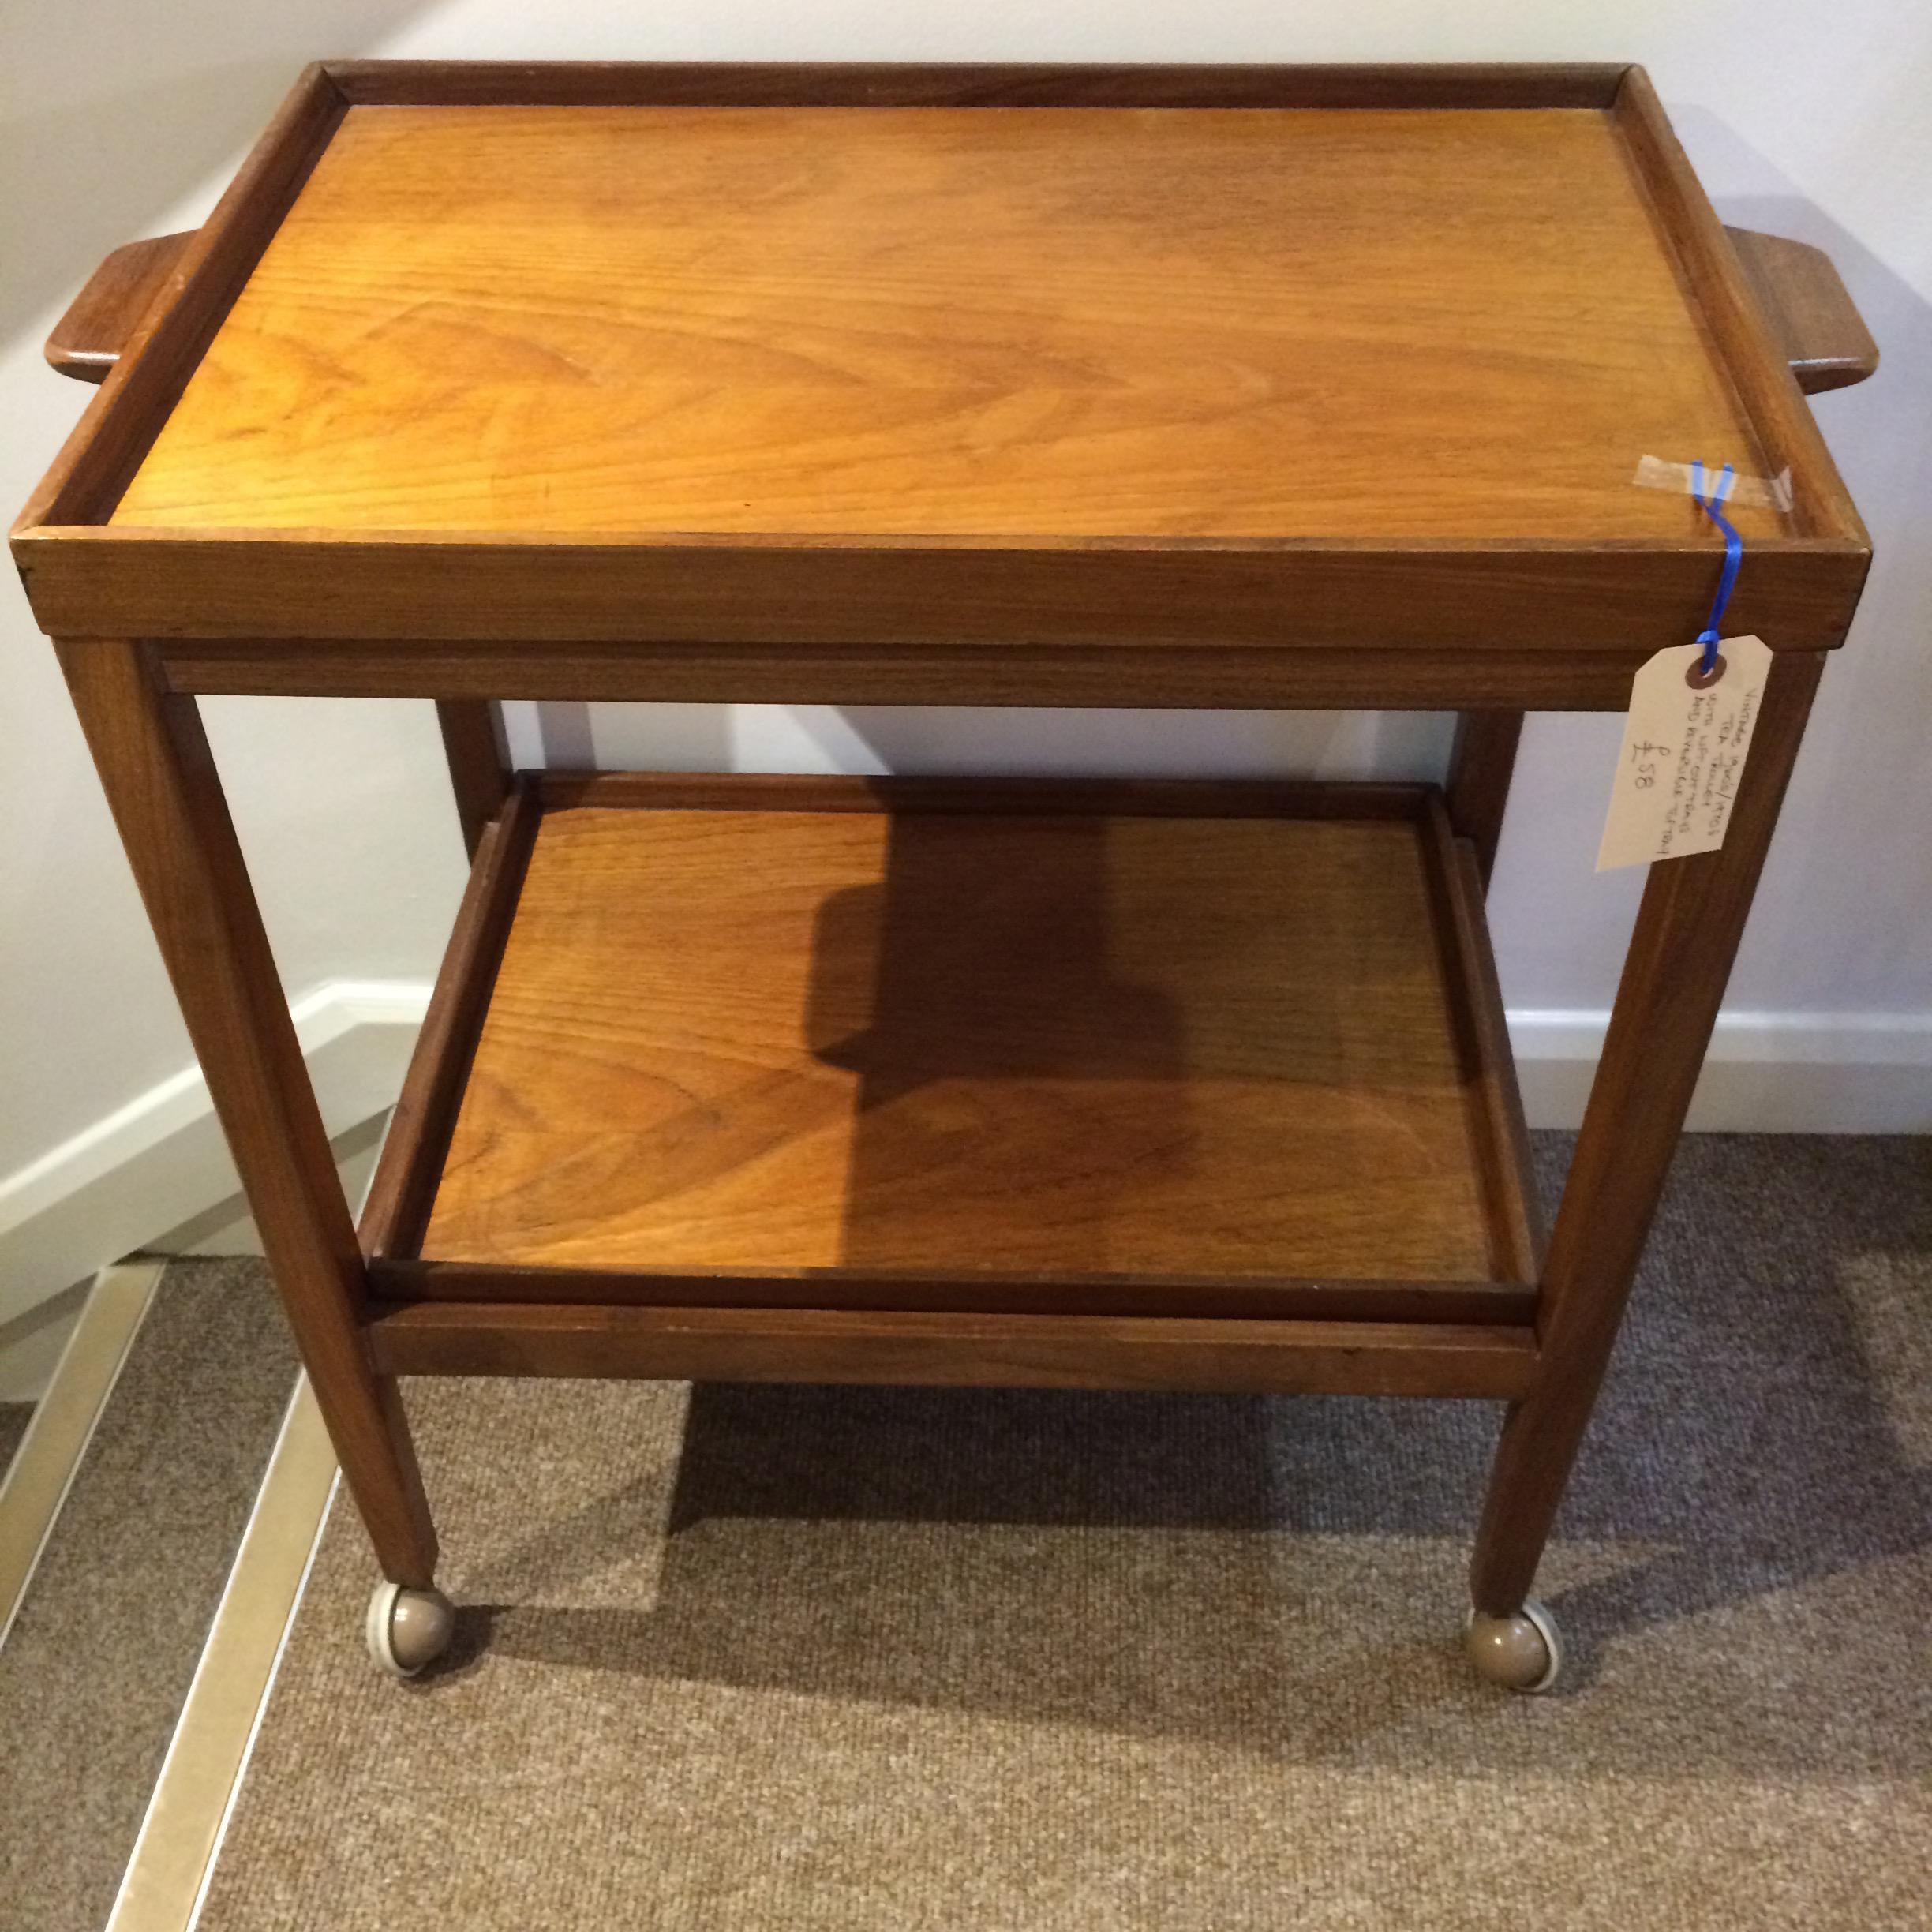 Vintage 1960s/1970s Tea Trolley